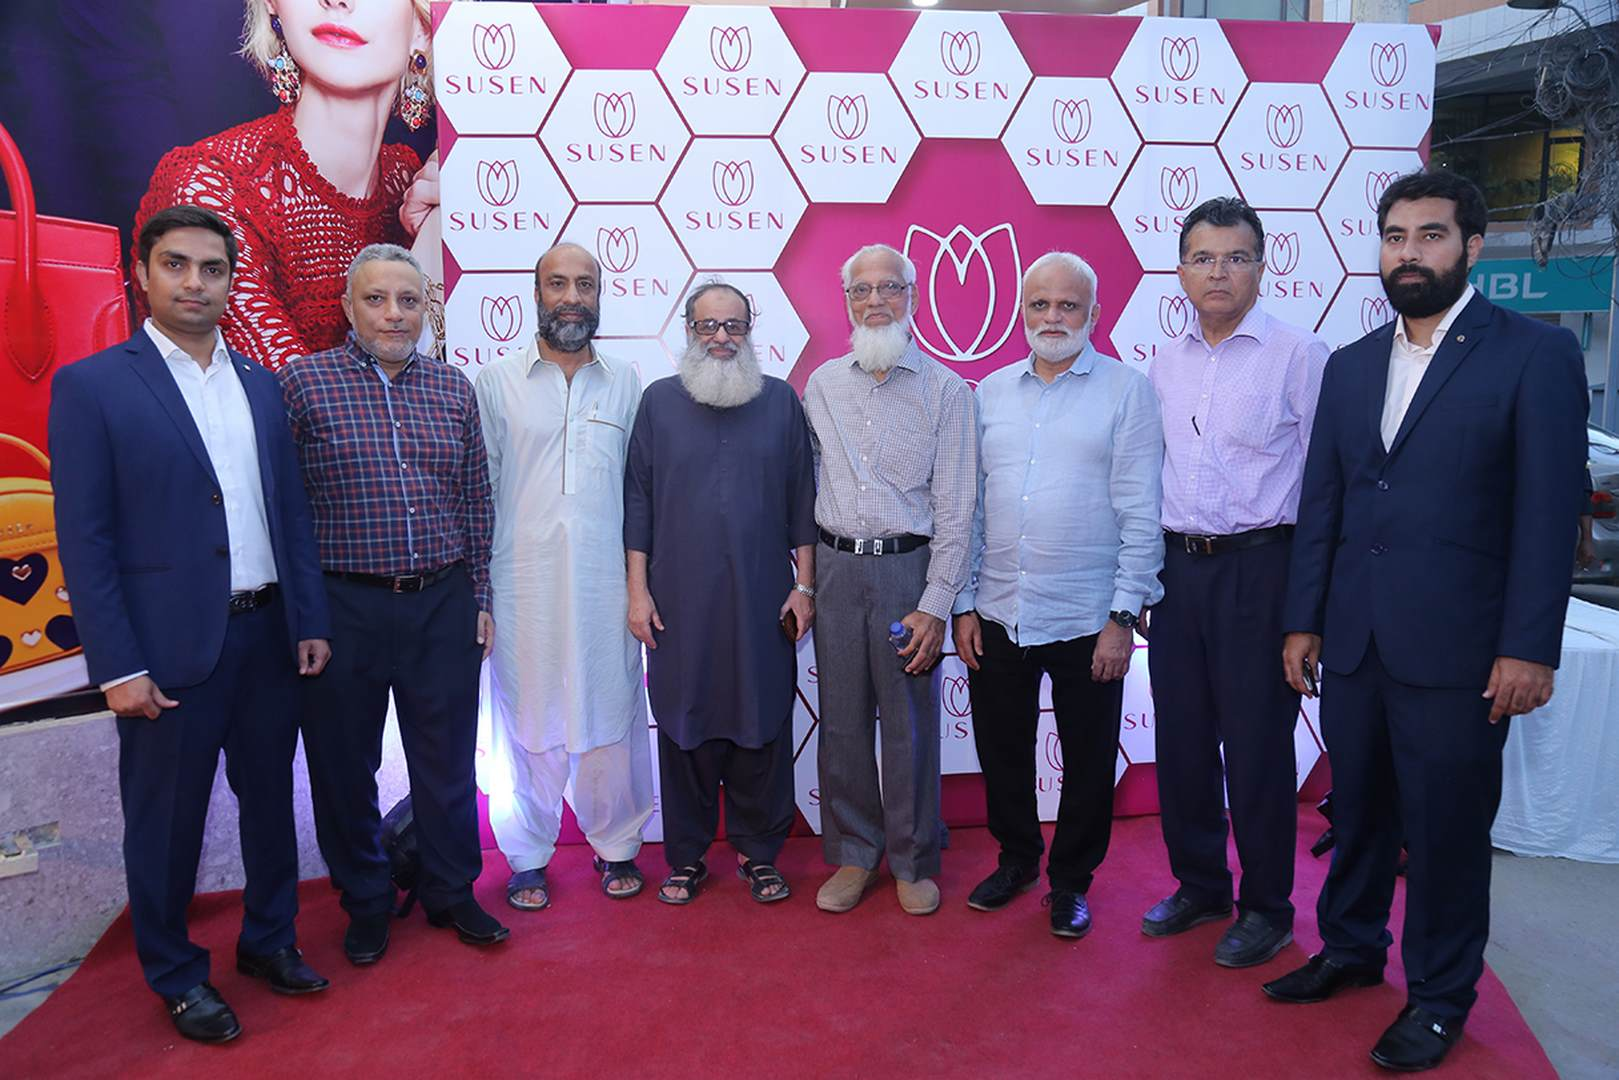 SUSEN launched its second outlet in Karachi